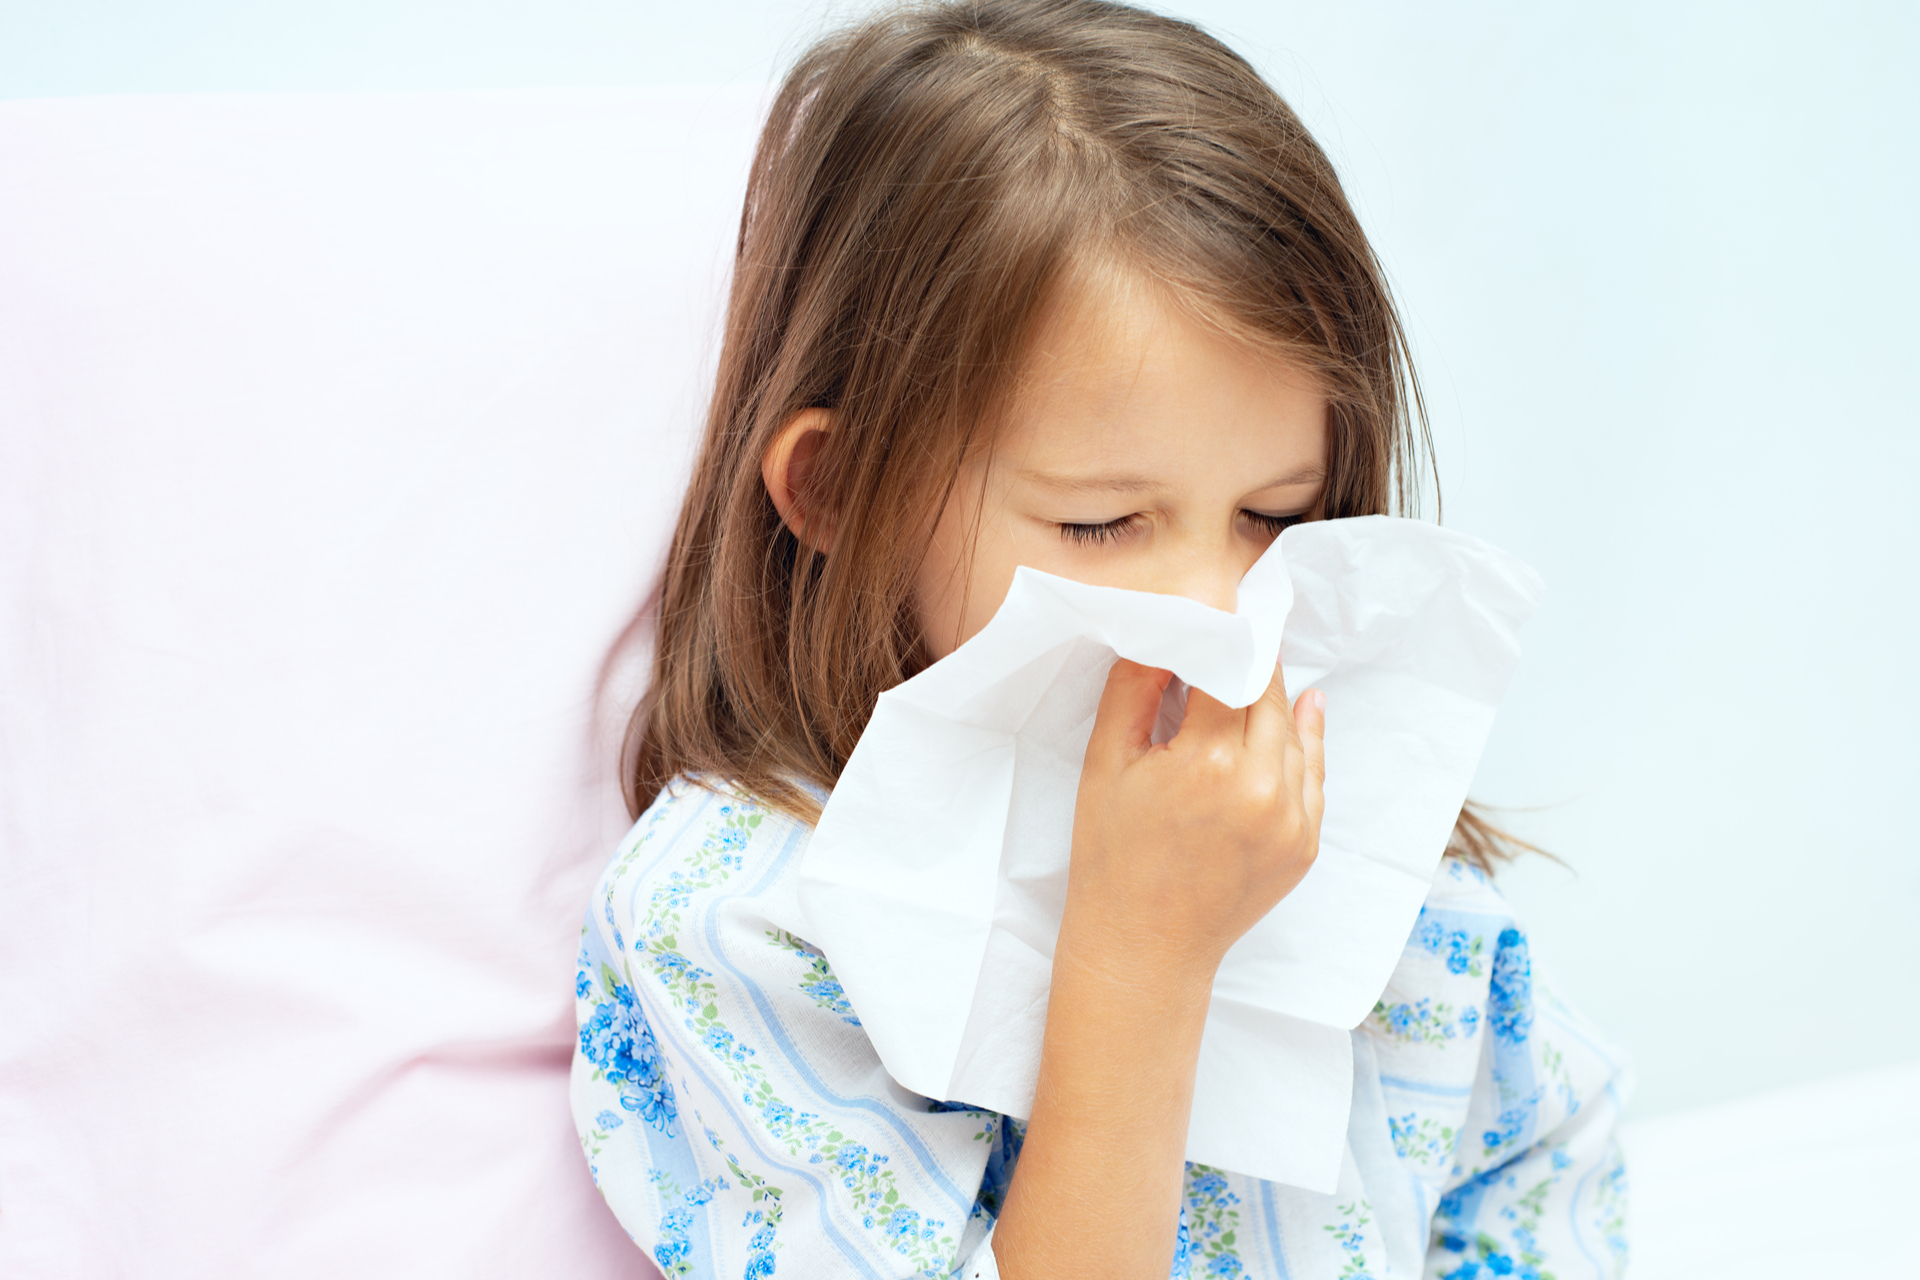 A girl with an allergy sneezes.